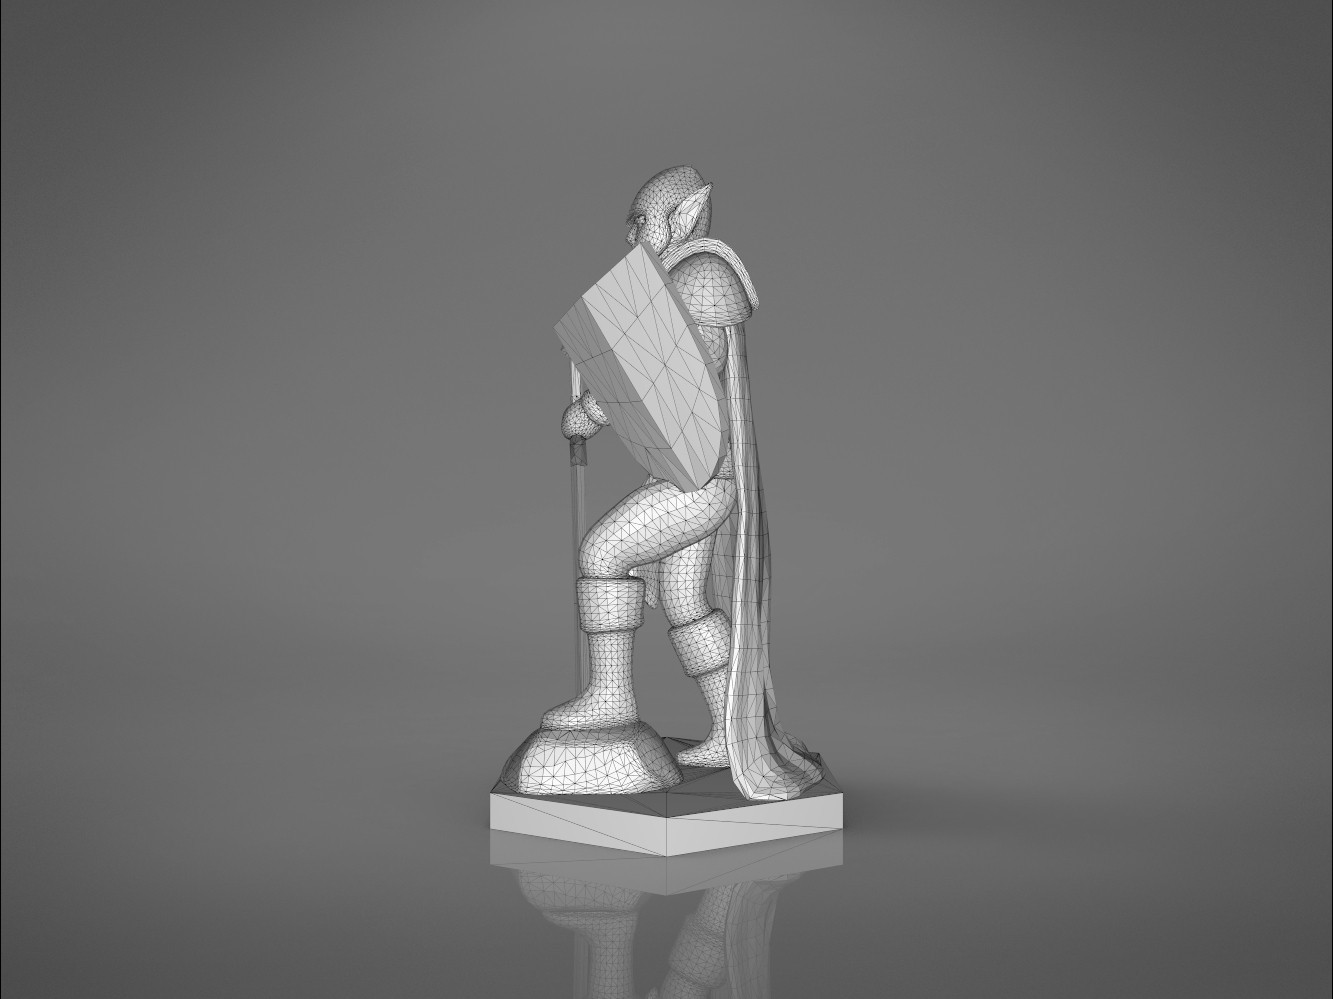 Warrior-right_perspective.369.jpg Download STL file ELF WARRIOR CHARACTER GAME FIGURE 3D print model • Object to 3D print, 3D-mon